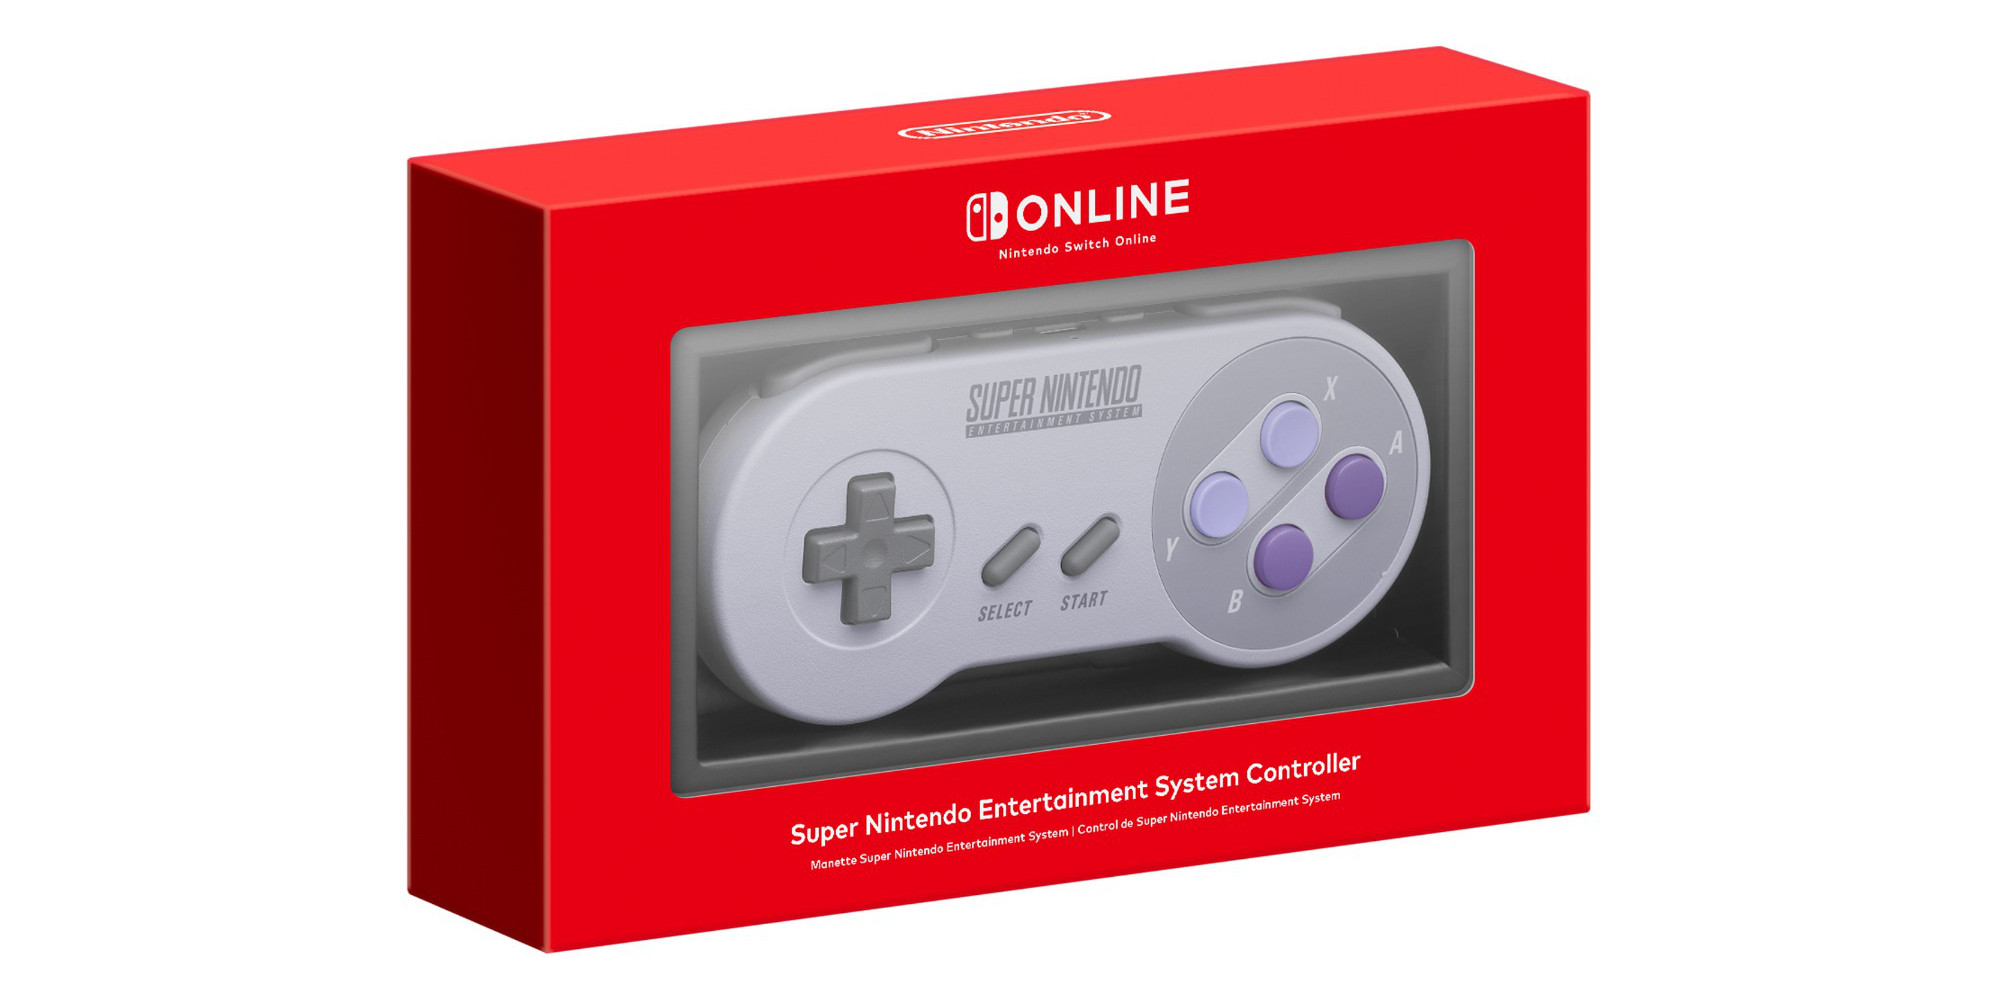 Super Nintendo Controller For Switch Back In Stock At 30